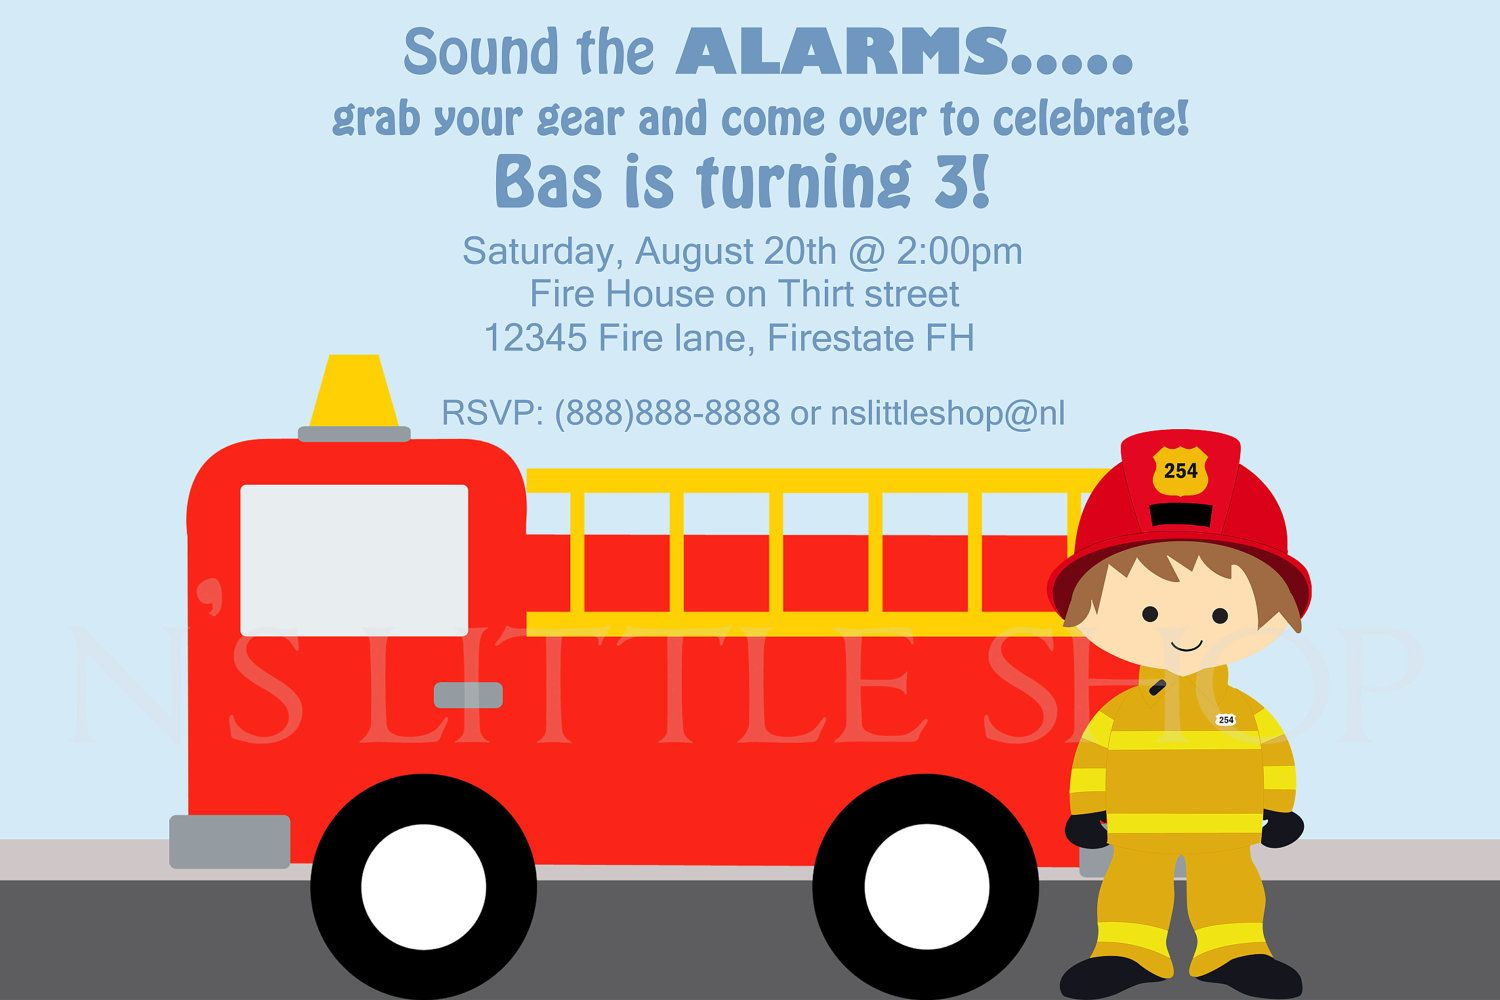 Cars Invitation Card Template Free: Firefighter Birthday Invitation With Car